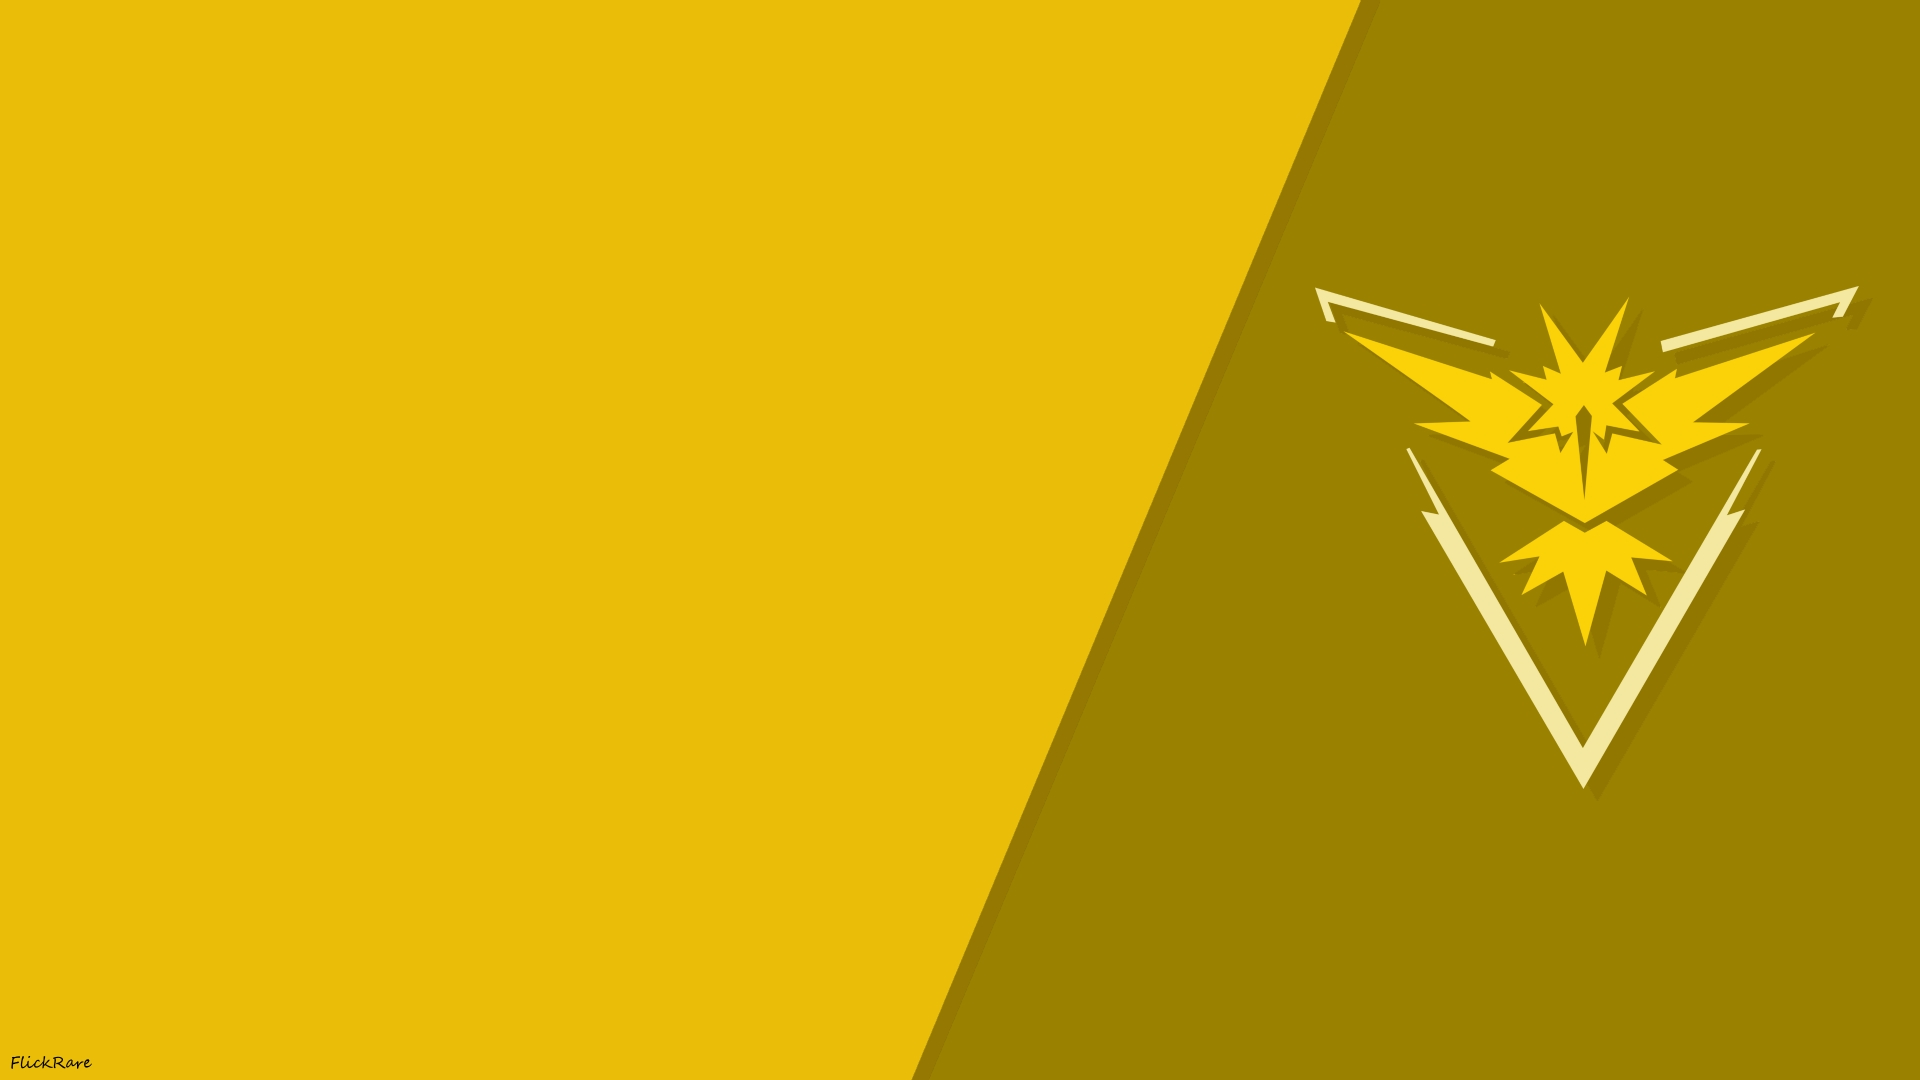 Pokemon Go Simple Team Instinct Wallpaper By Flickrare On Deviantart